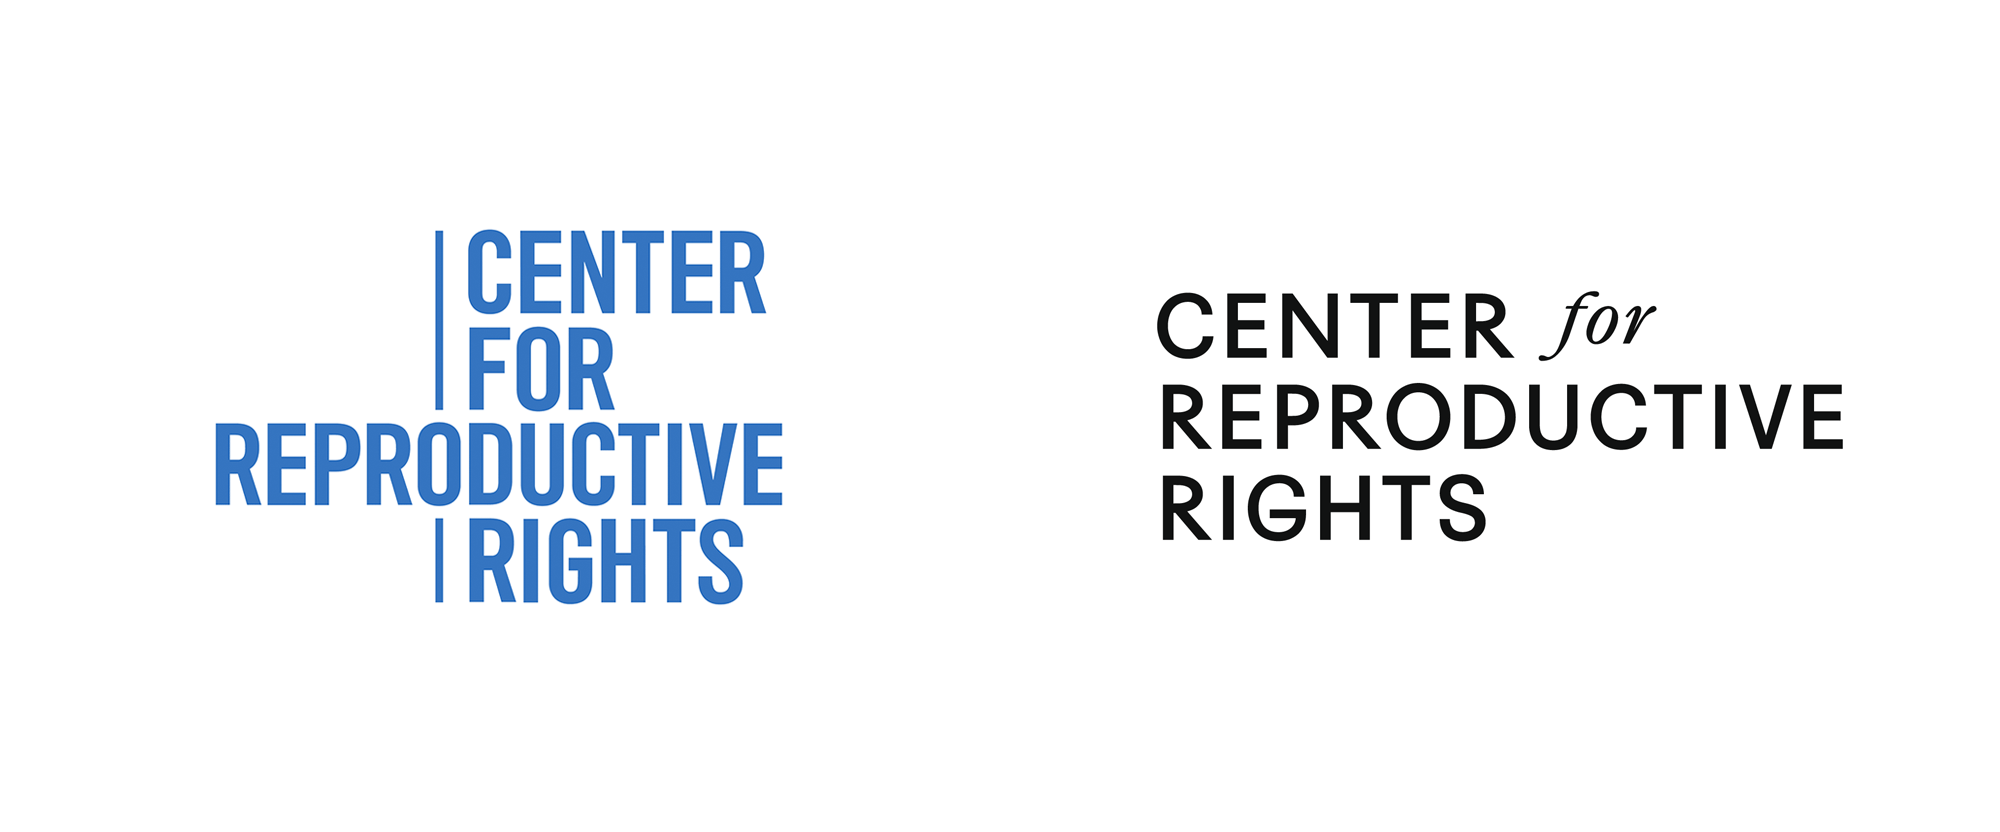 New Logo and Identity for Center for Reproductive Rights by Isometric